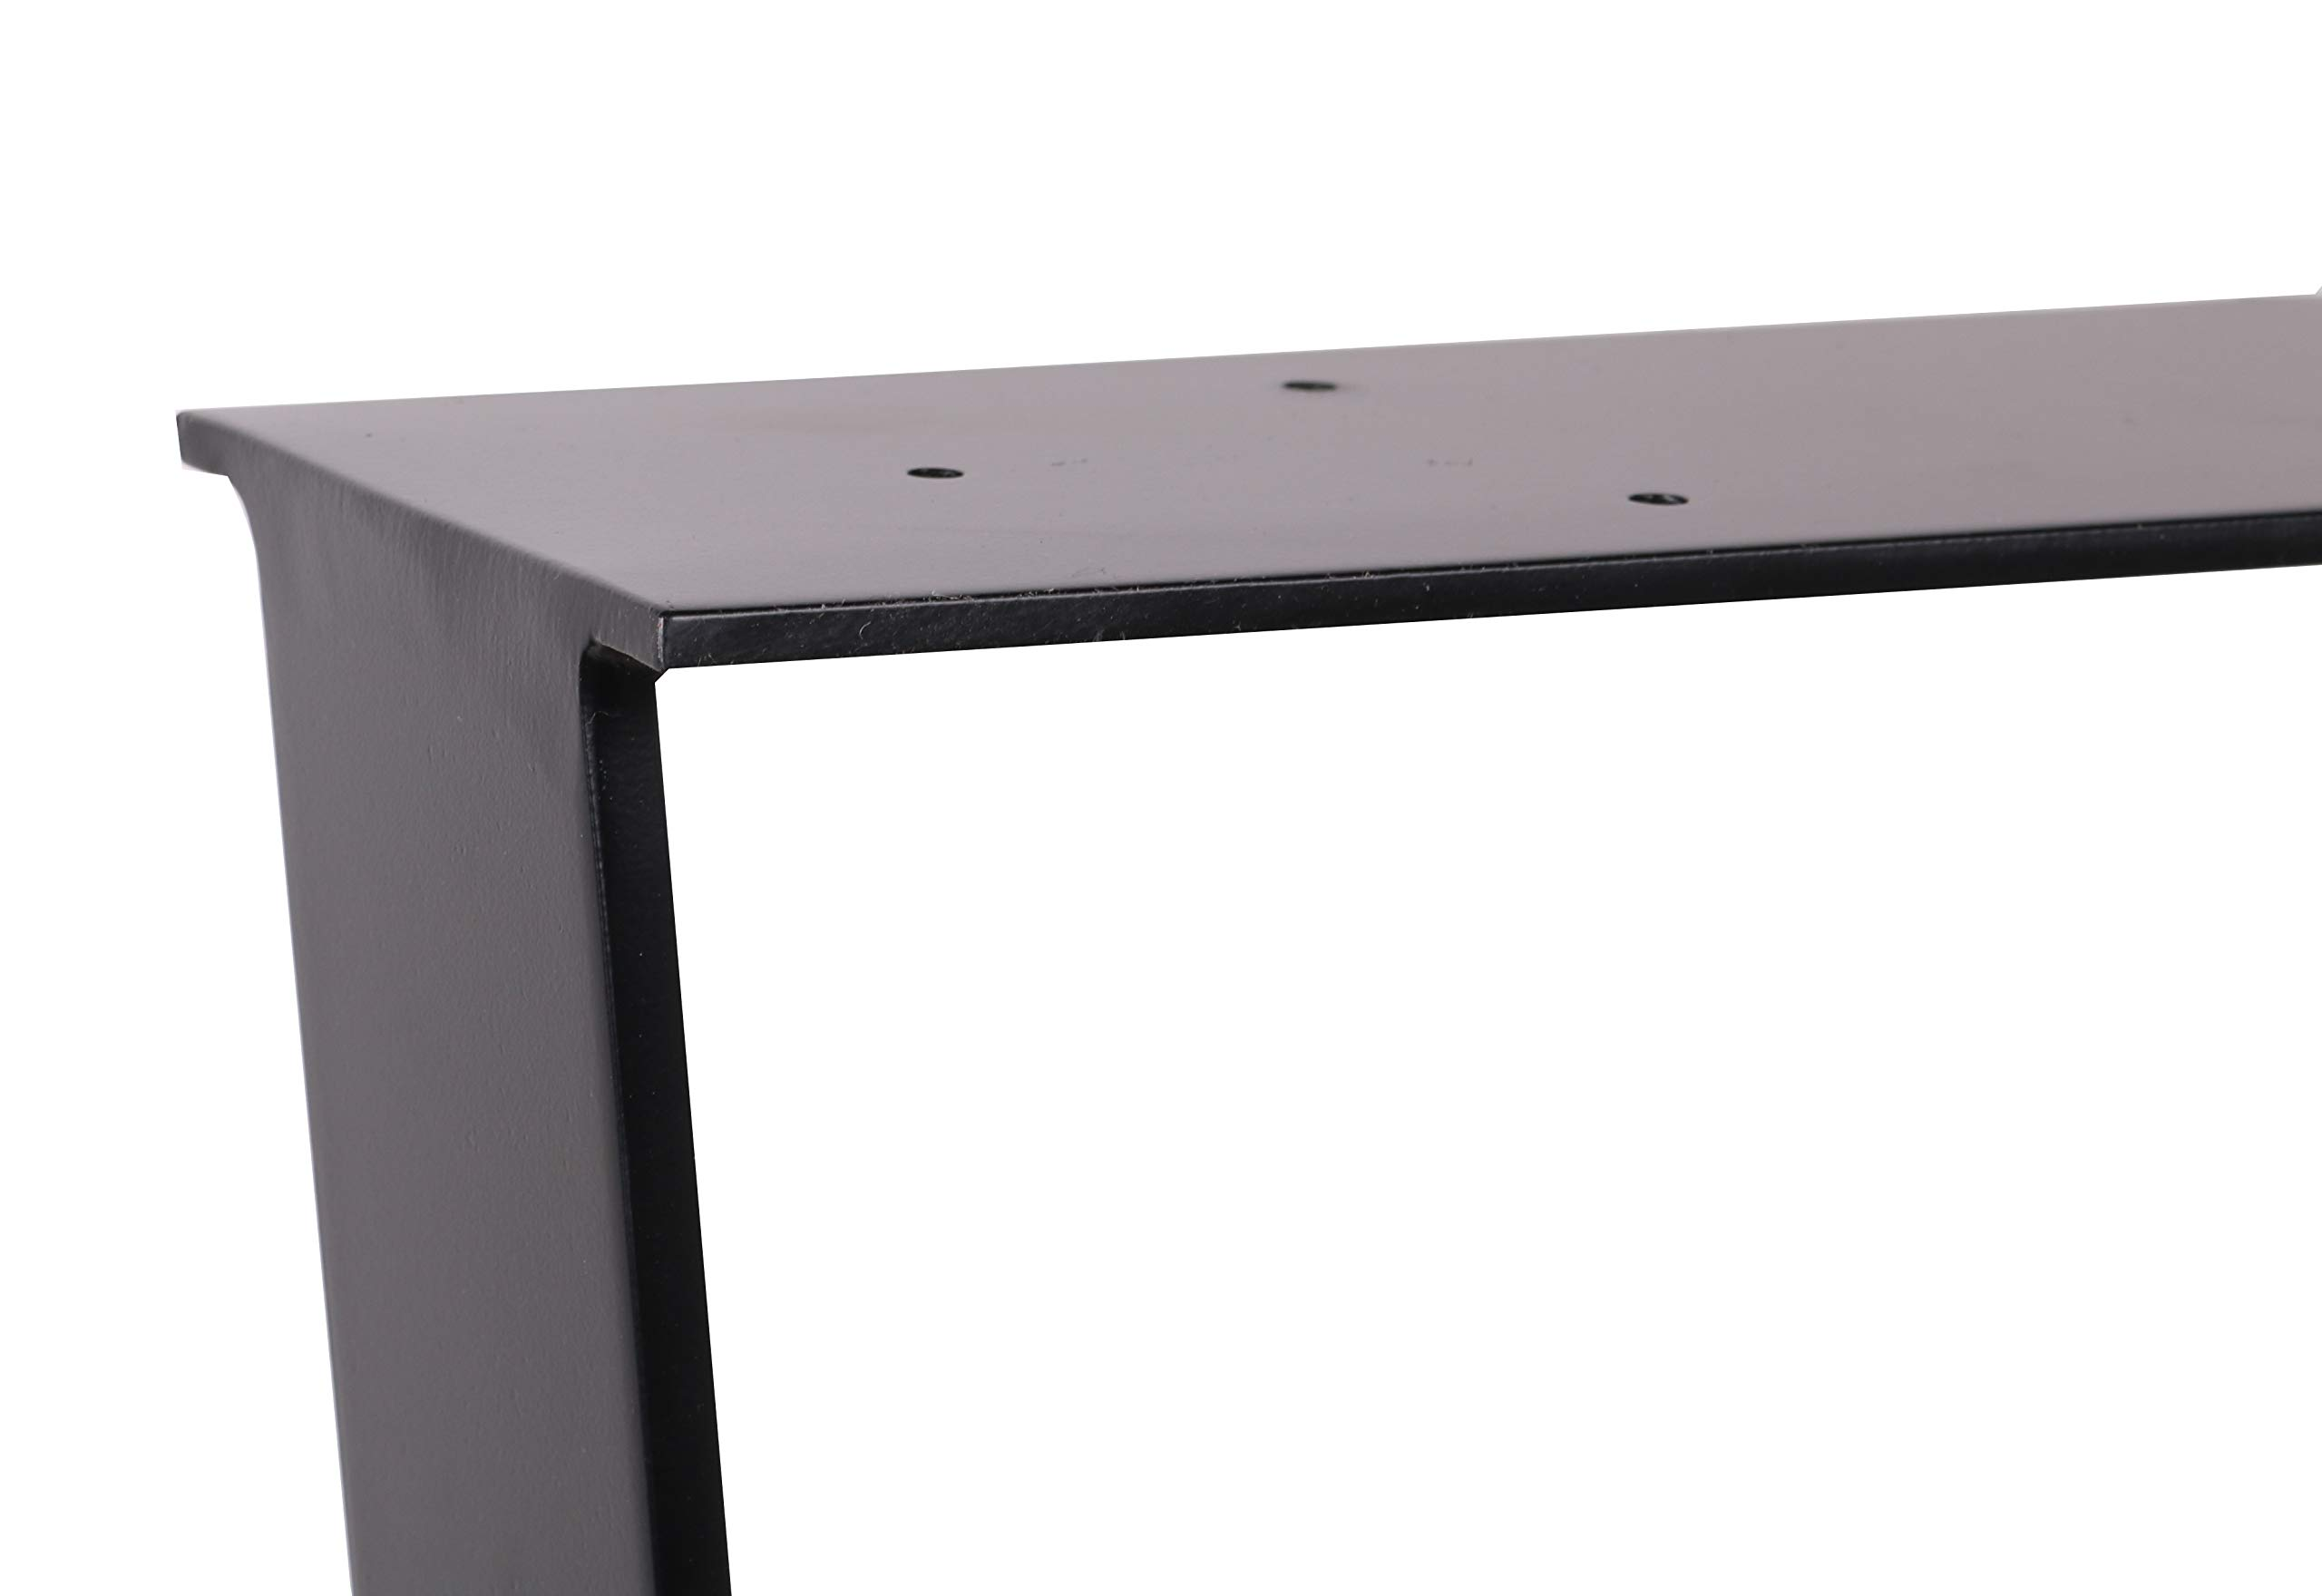 2 x 28'' Trapezoid Shaped Dining Table Legs, Heavy Duty Inverted trapezoidal Steel table legs, Office Table Legs,Computer Desk Legs,Industrial kitchen table legs,Country Style Table Legs,Set of 2,Black by ECLV (Image #7)